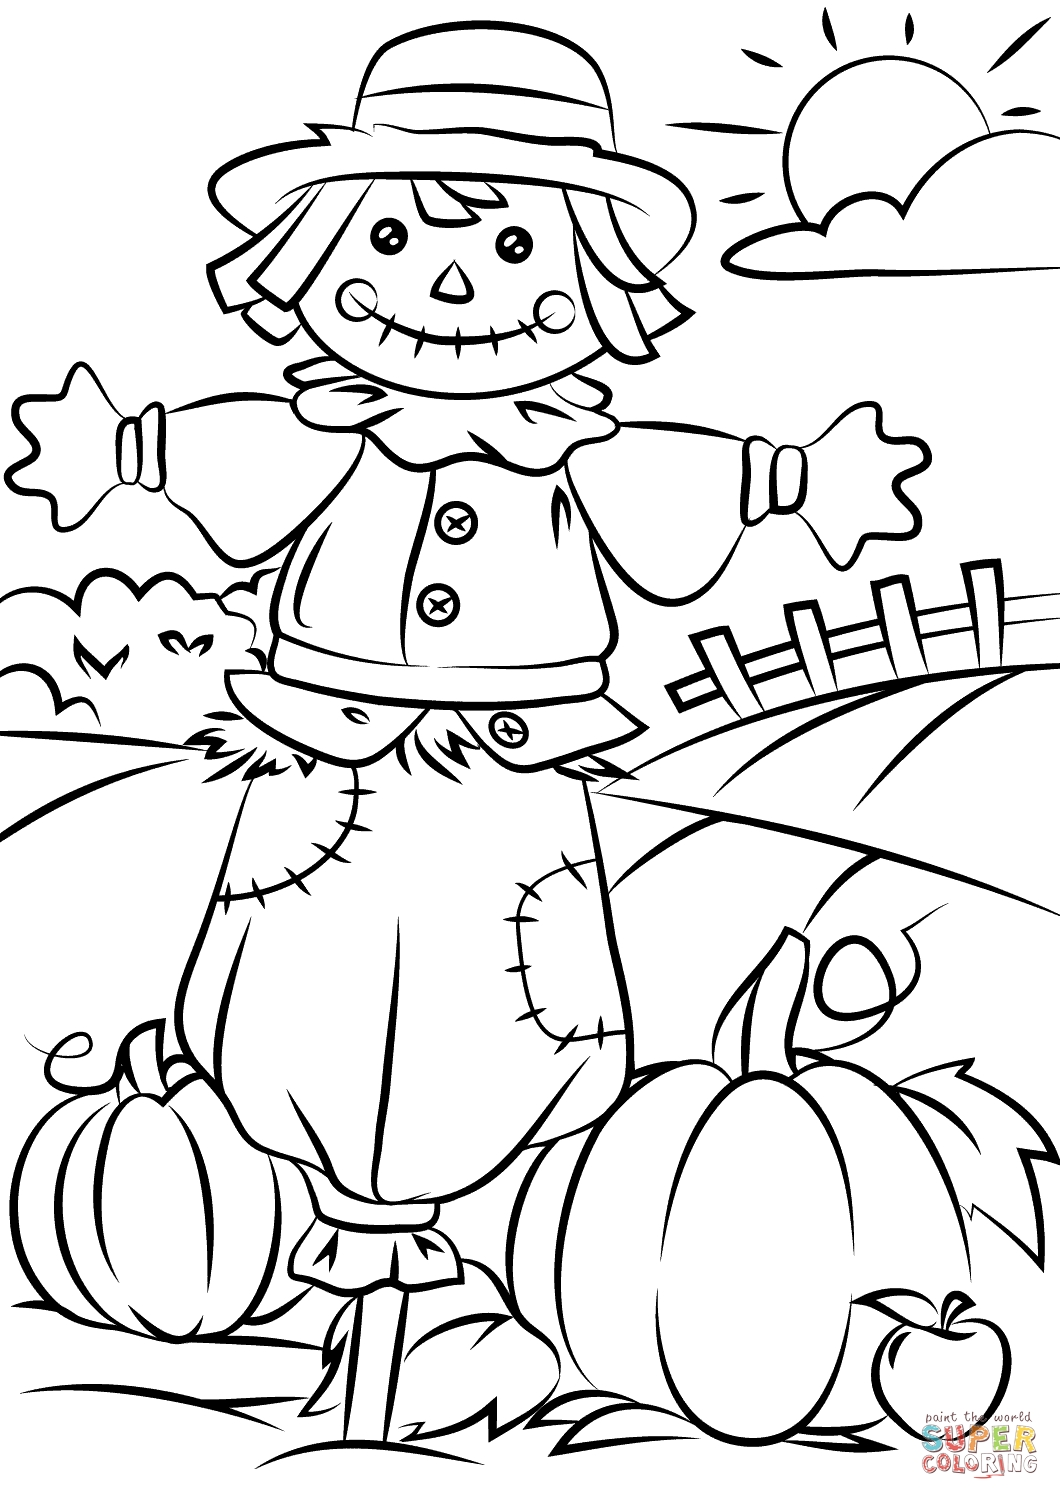 Coast Guard Coloring Pages At Getcolorings